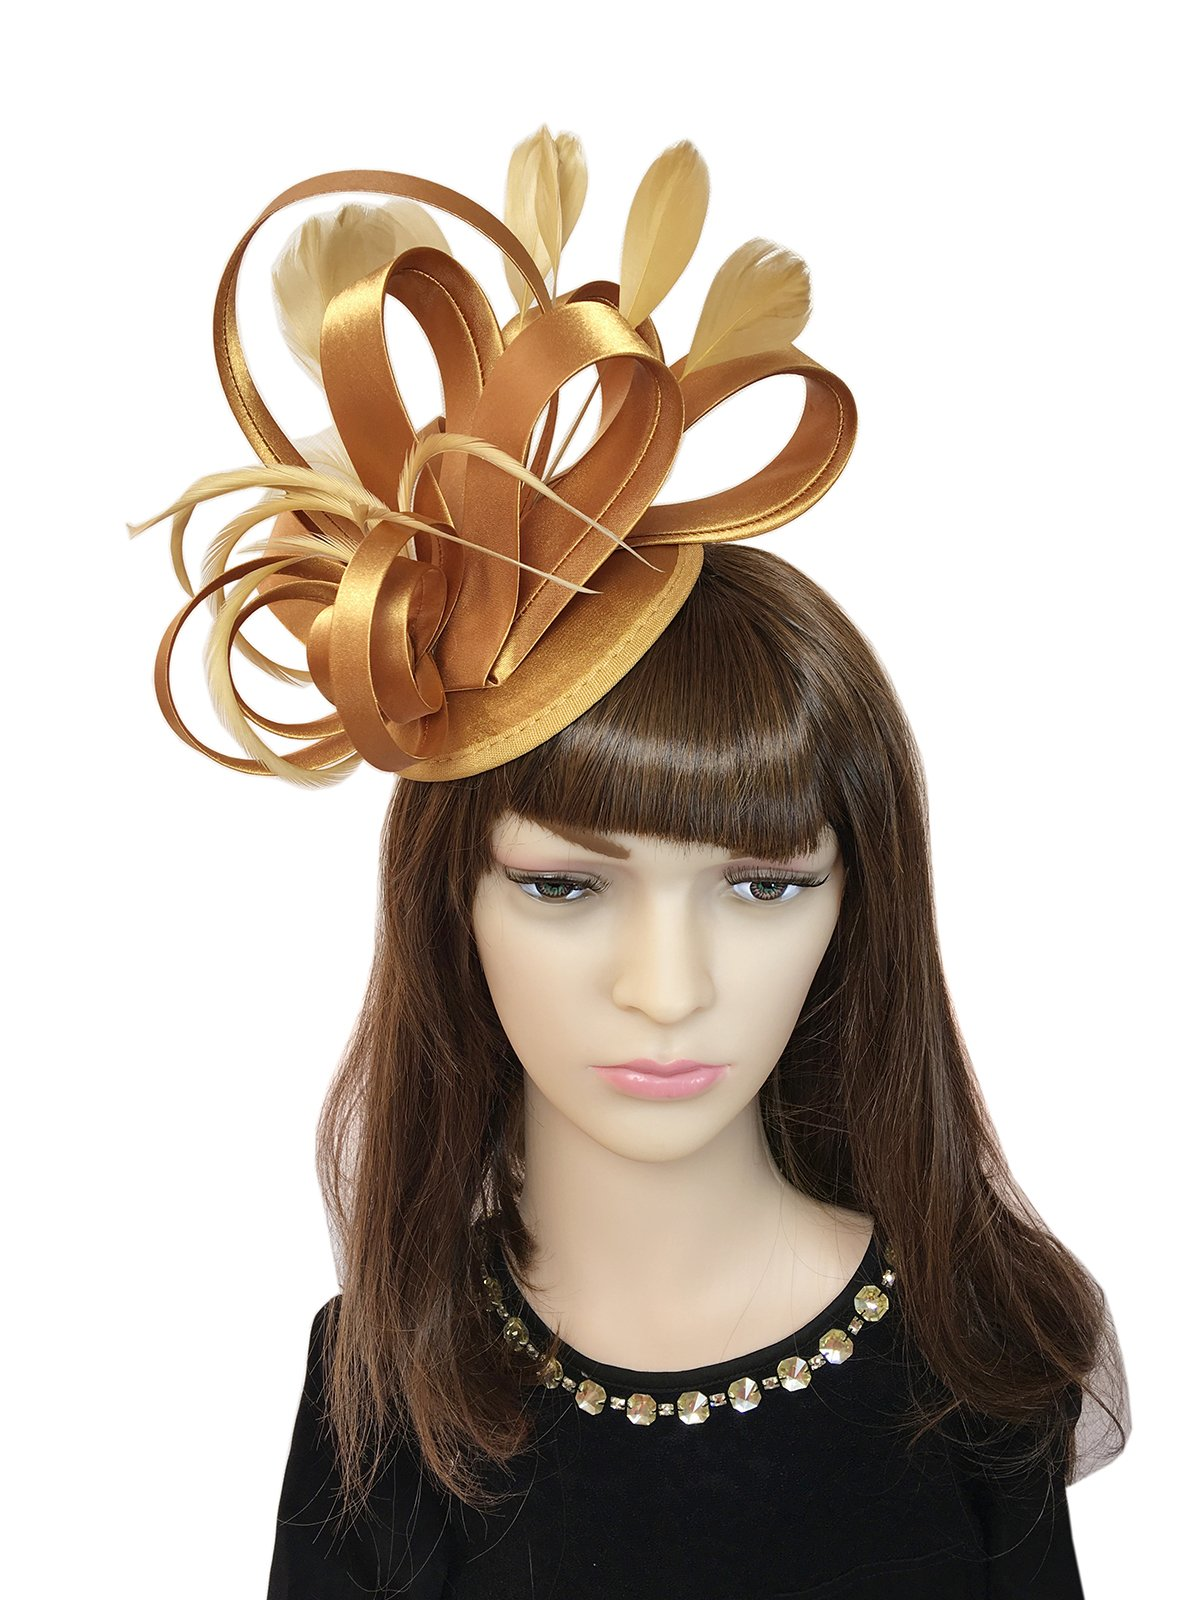 YSJOY Womens Fascinator Hair Clip Derby Hat For 50th Birthday Anniversary Cocktail Party Headwear (Gold)